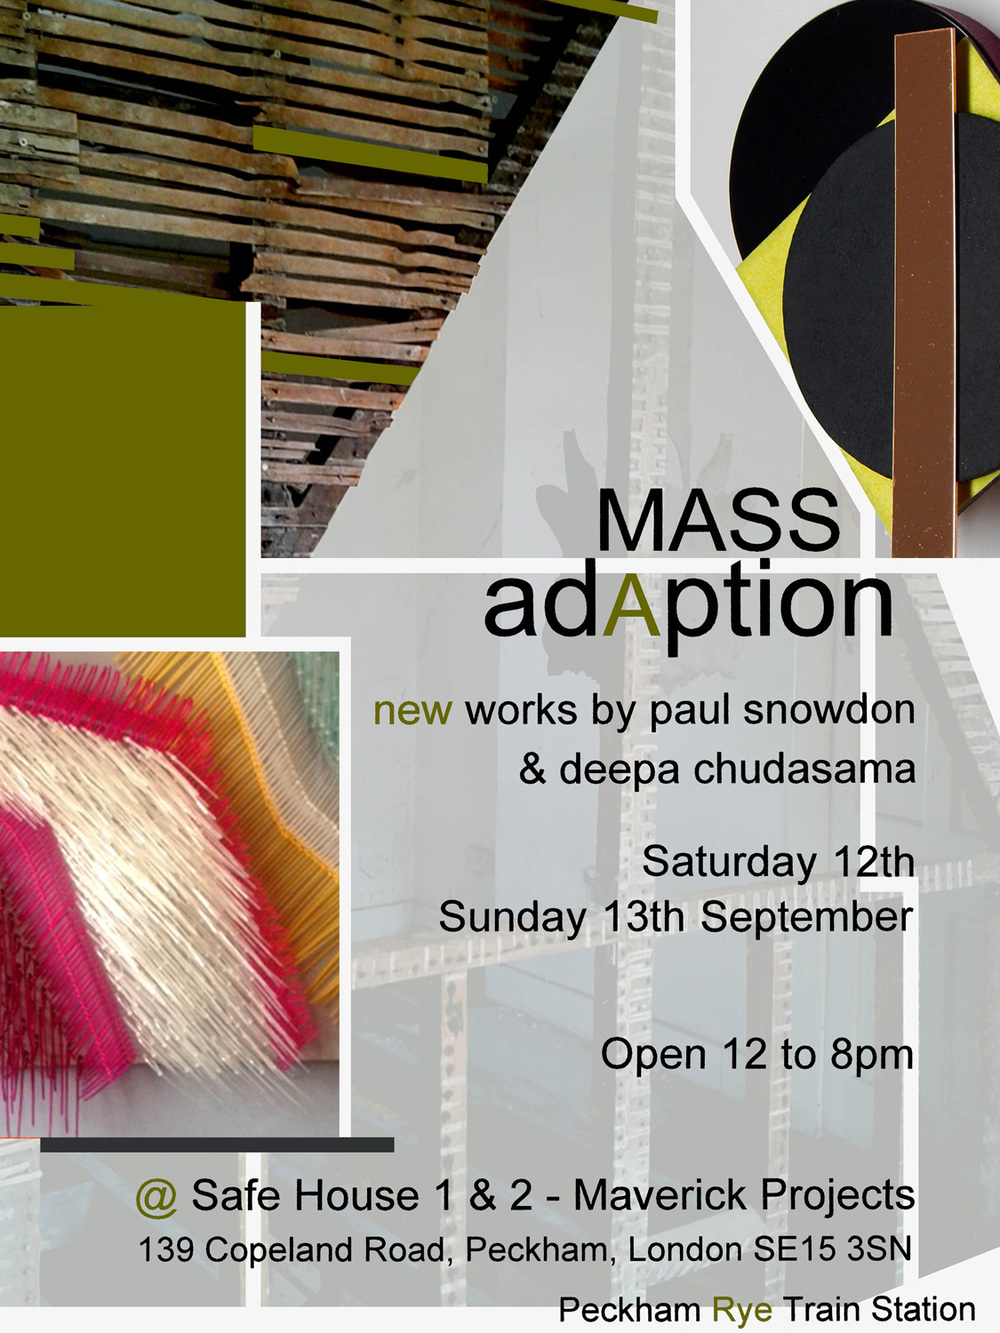 Mass Adaption flyer